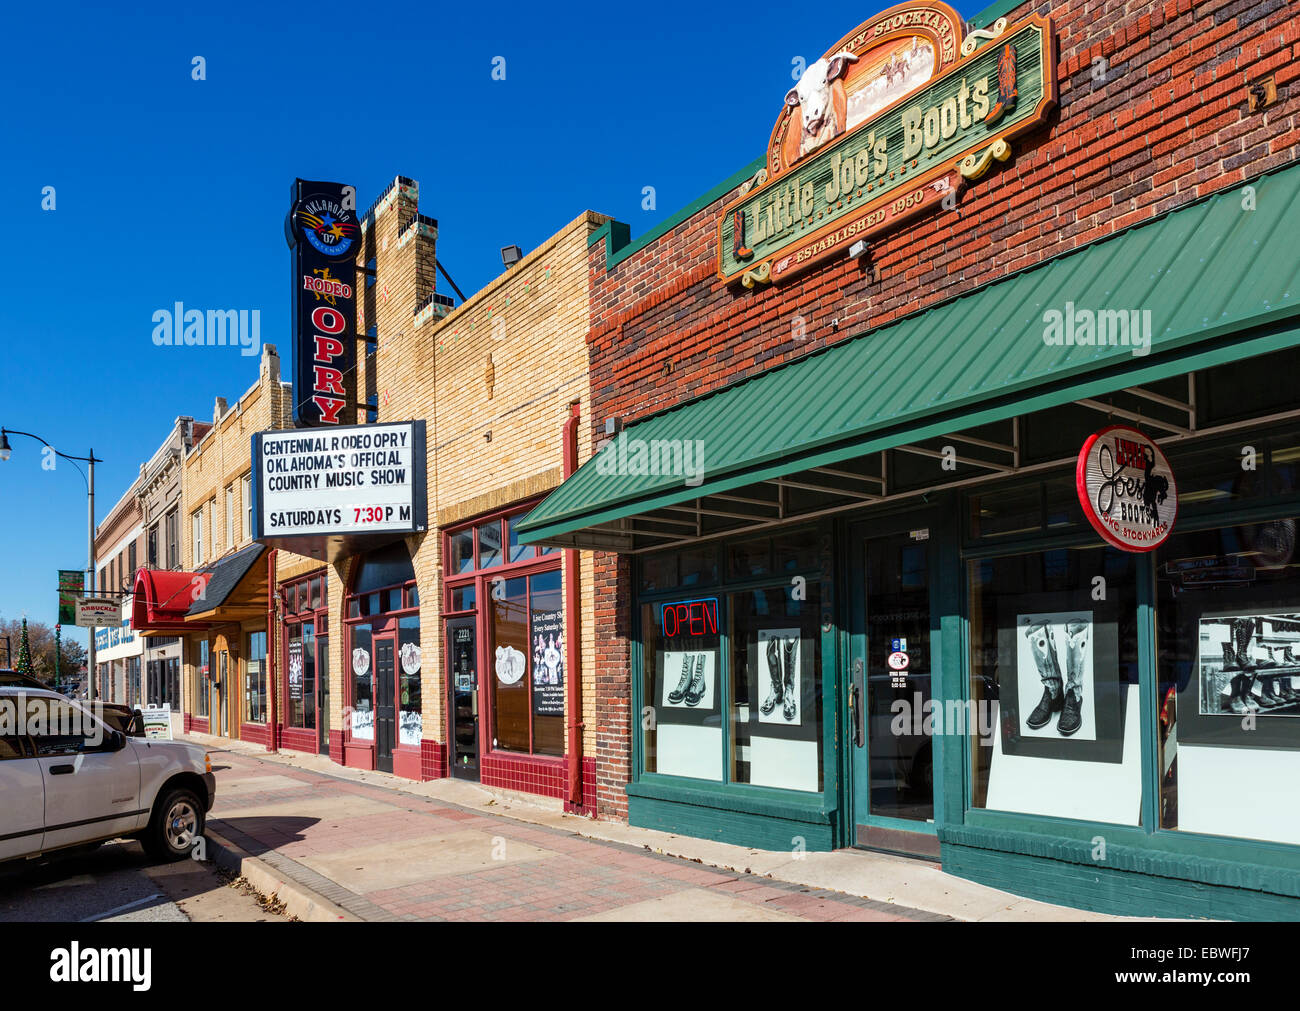 Stores and bars on Exchange Avenue in the historic Stockyard district, Oklahoma City, OK, USA - Stock Image